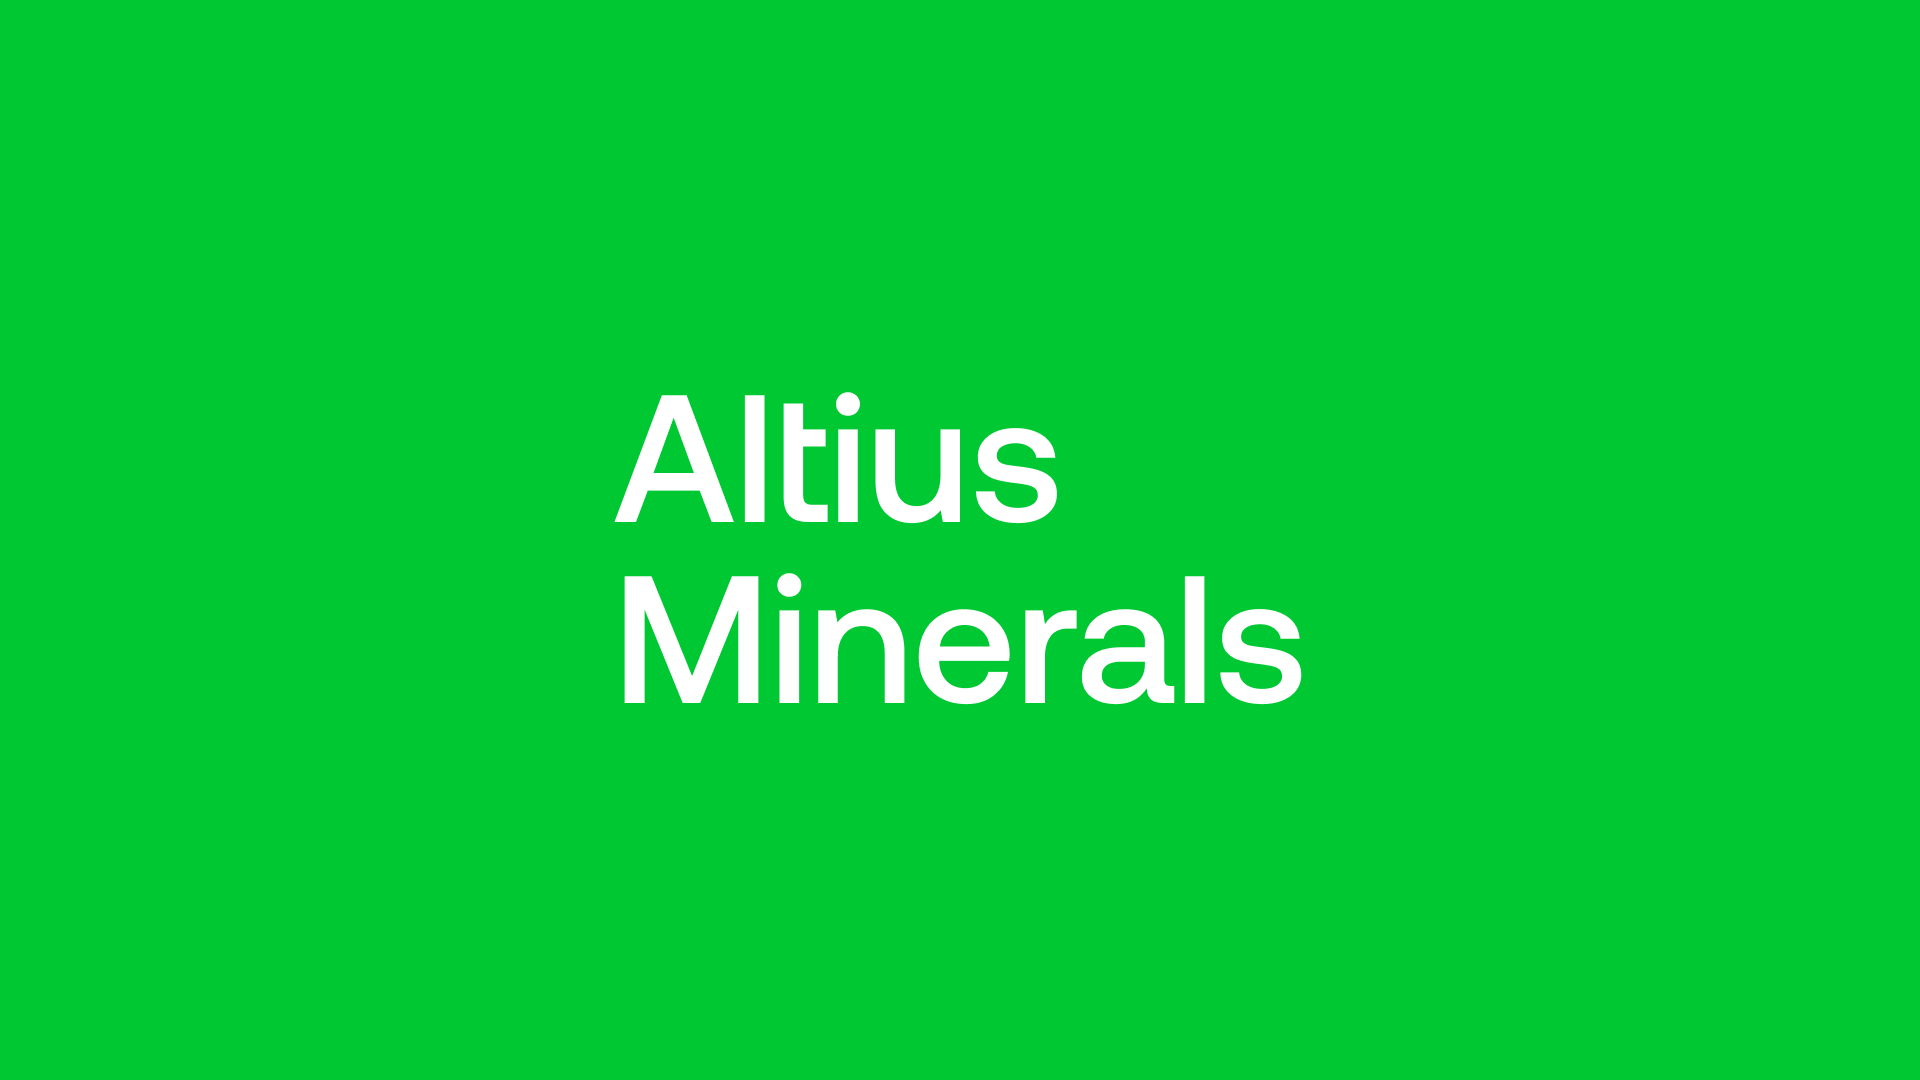 Altius Minerals (ALS) - Cash is King and Organic Growth is the Focus